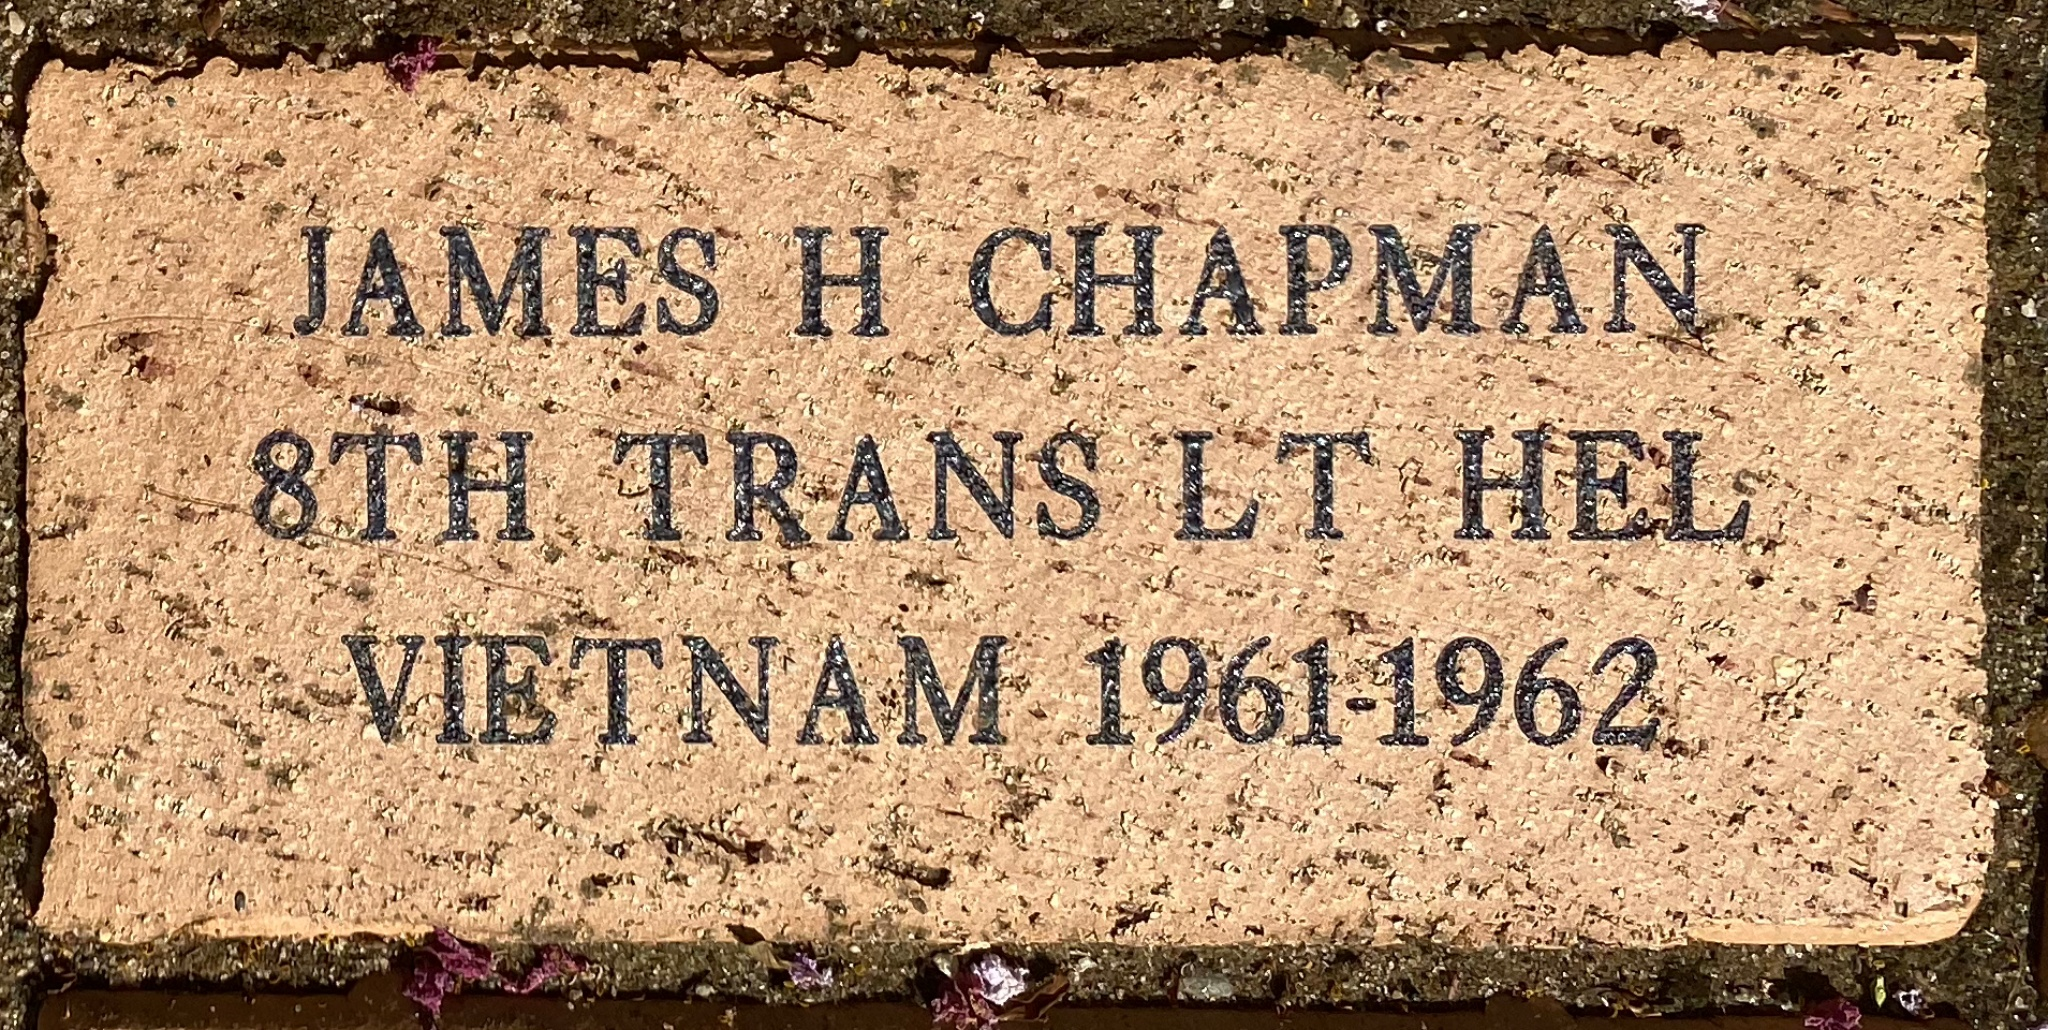 JAMES H CHAPMAN 8TH TRANS LT HEL VIETNAM 1961-1962